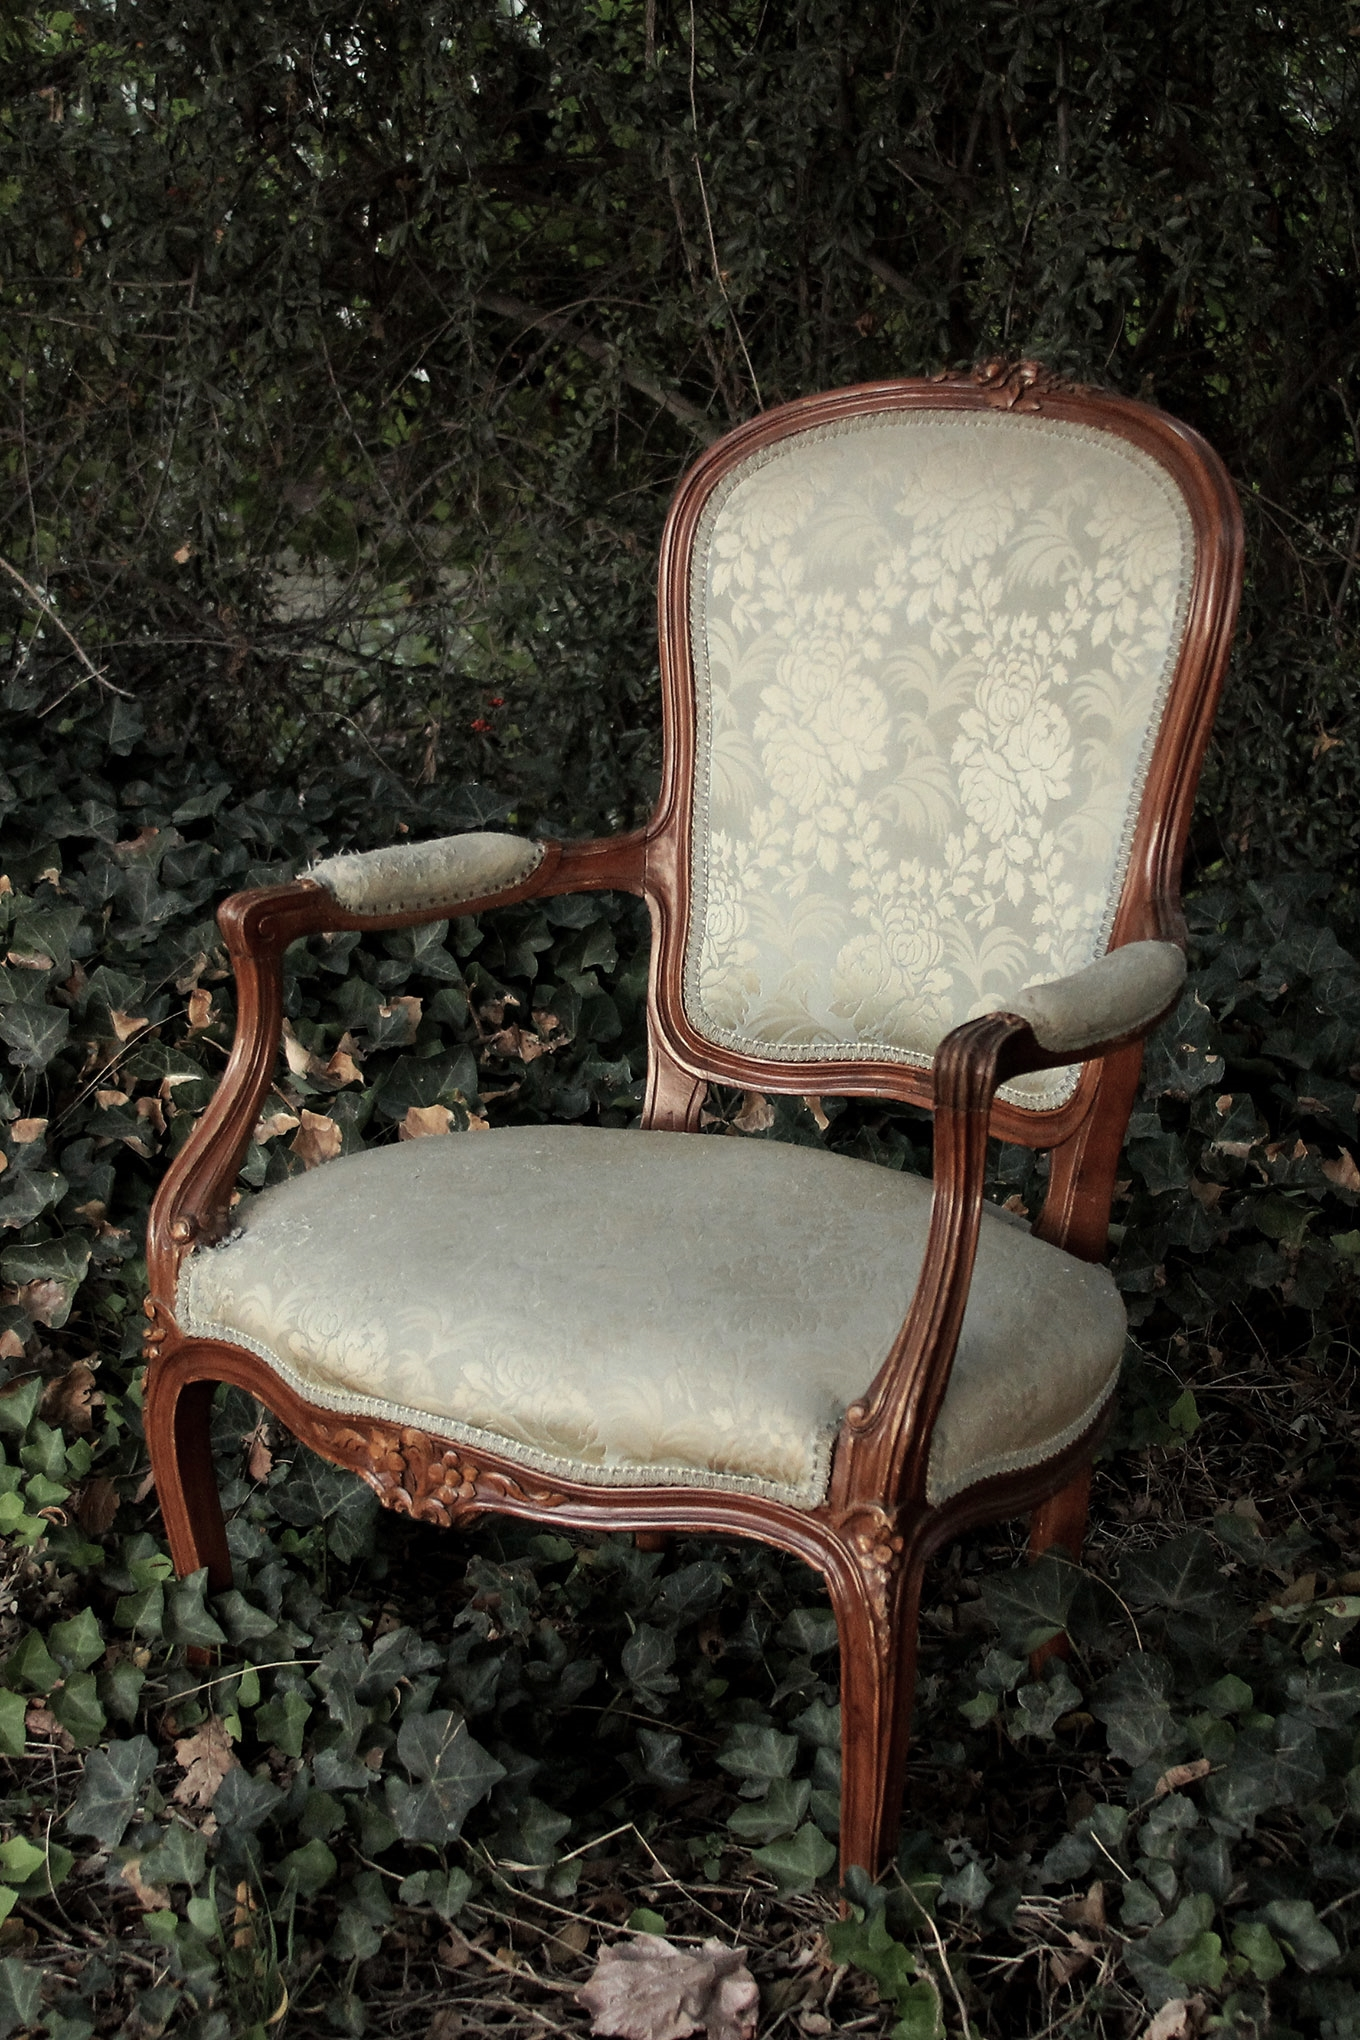 Antique Parlor Chairs American Vintage Rentals Wedding Rentals Furniture Decor